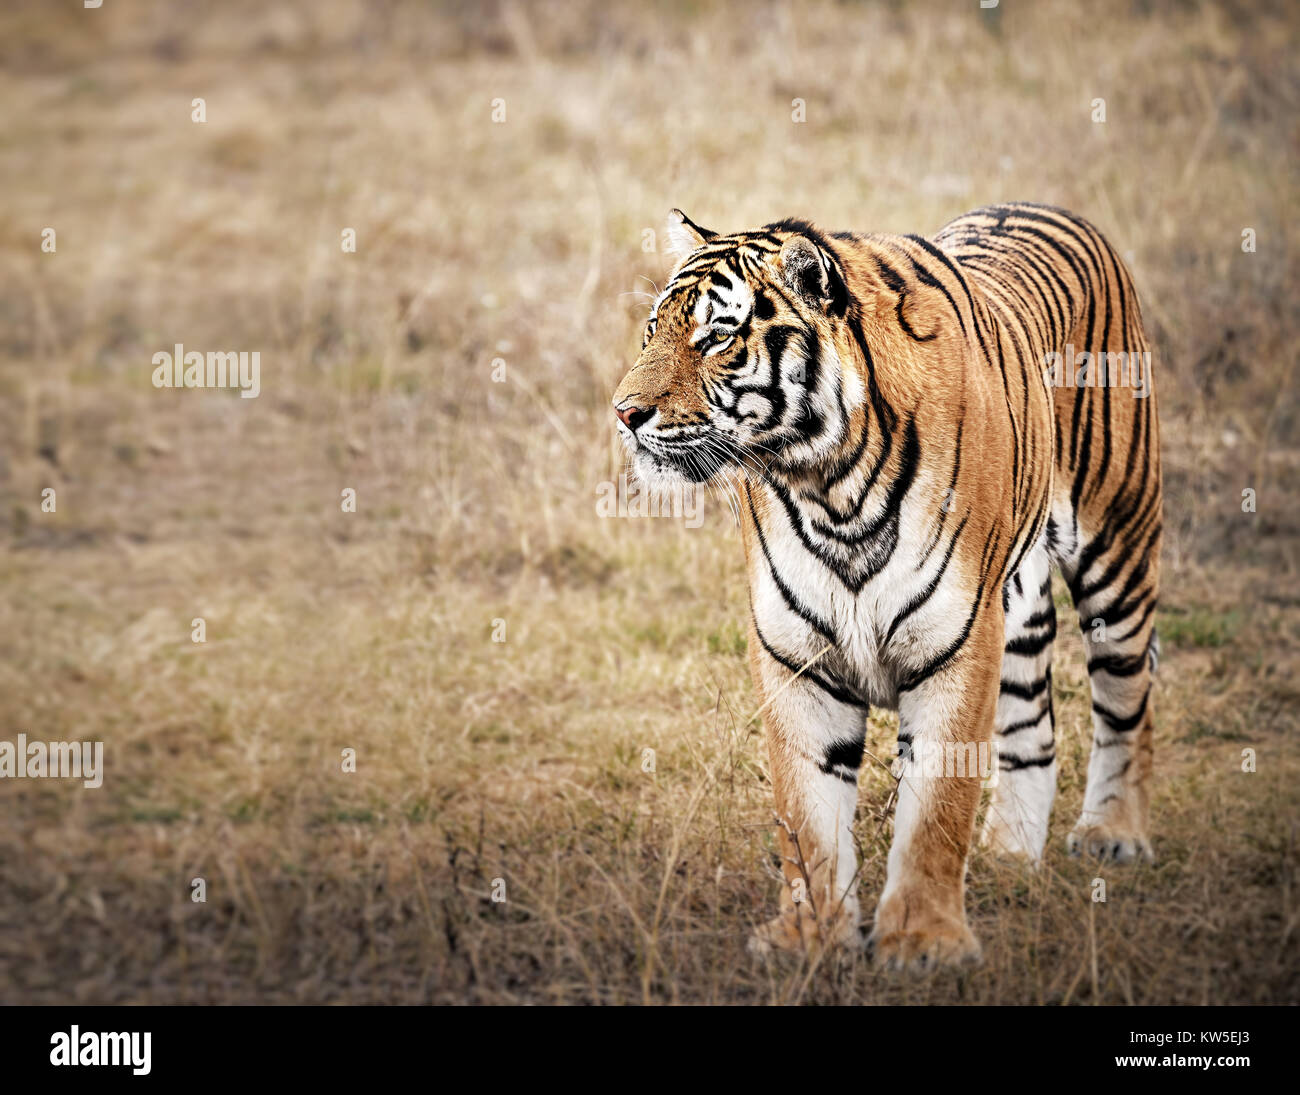 Tiger in a beautiful golden light - Stock Image